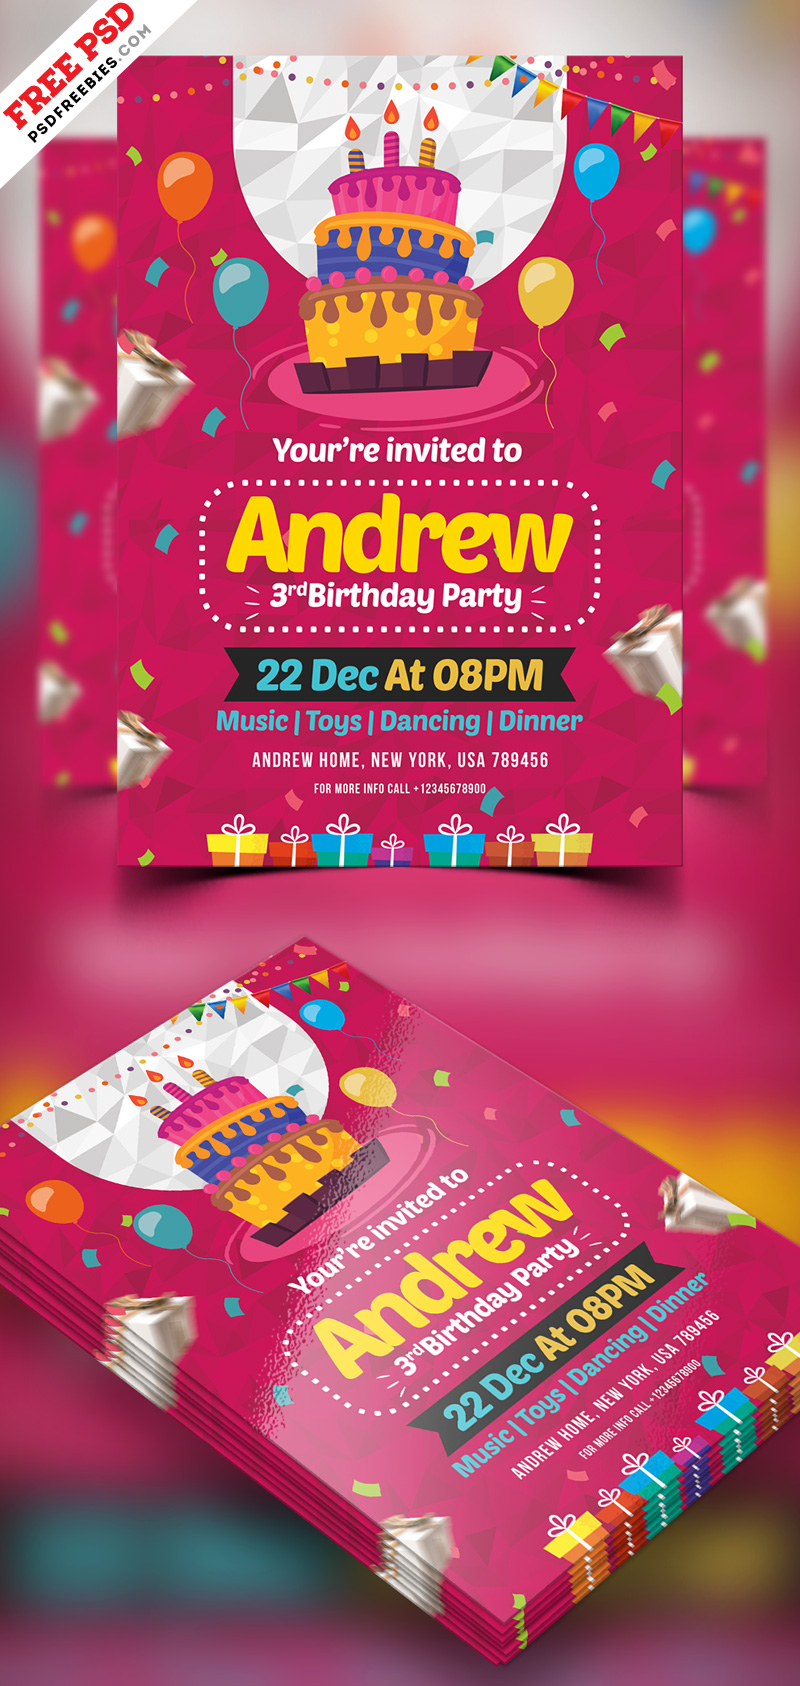 Birthday Party Invitation Card Psd Preview Psdfreebies Com